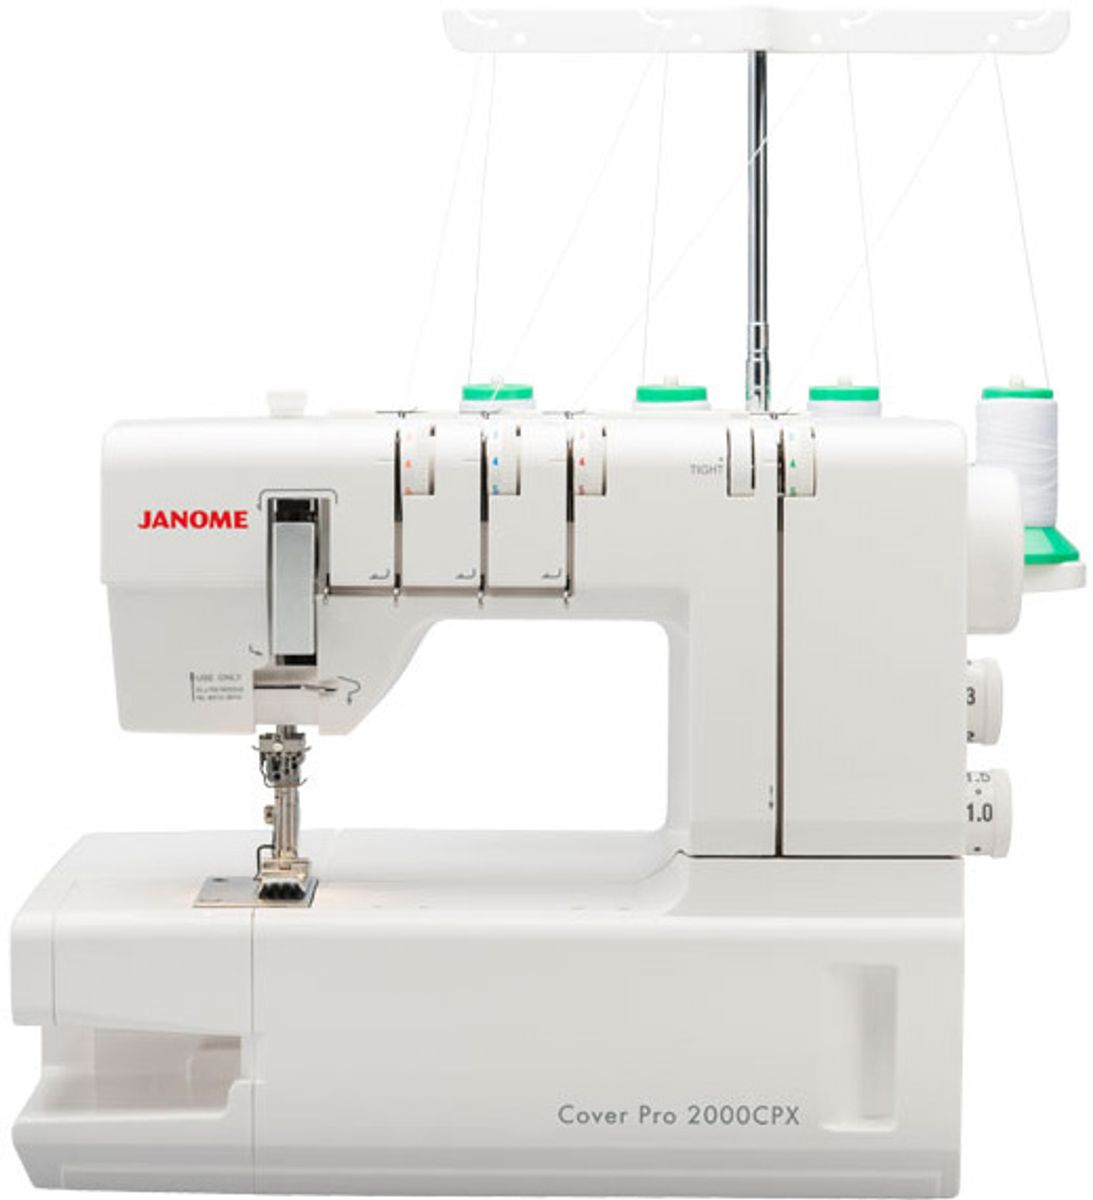 Recouvreuse Janome Cover Pro 2000CPX